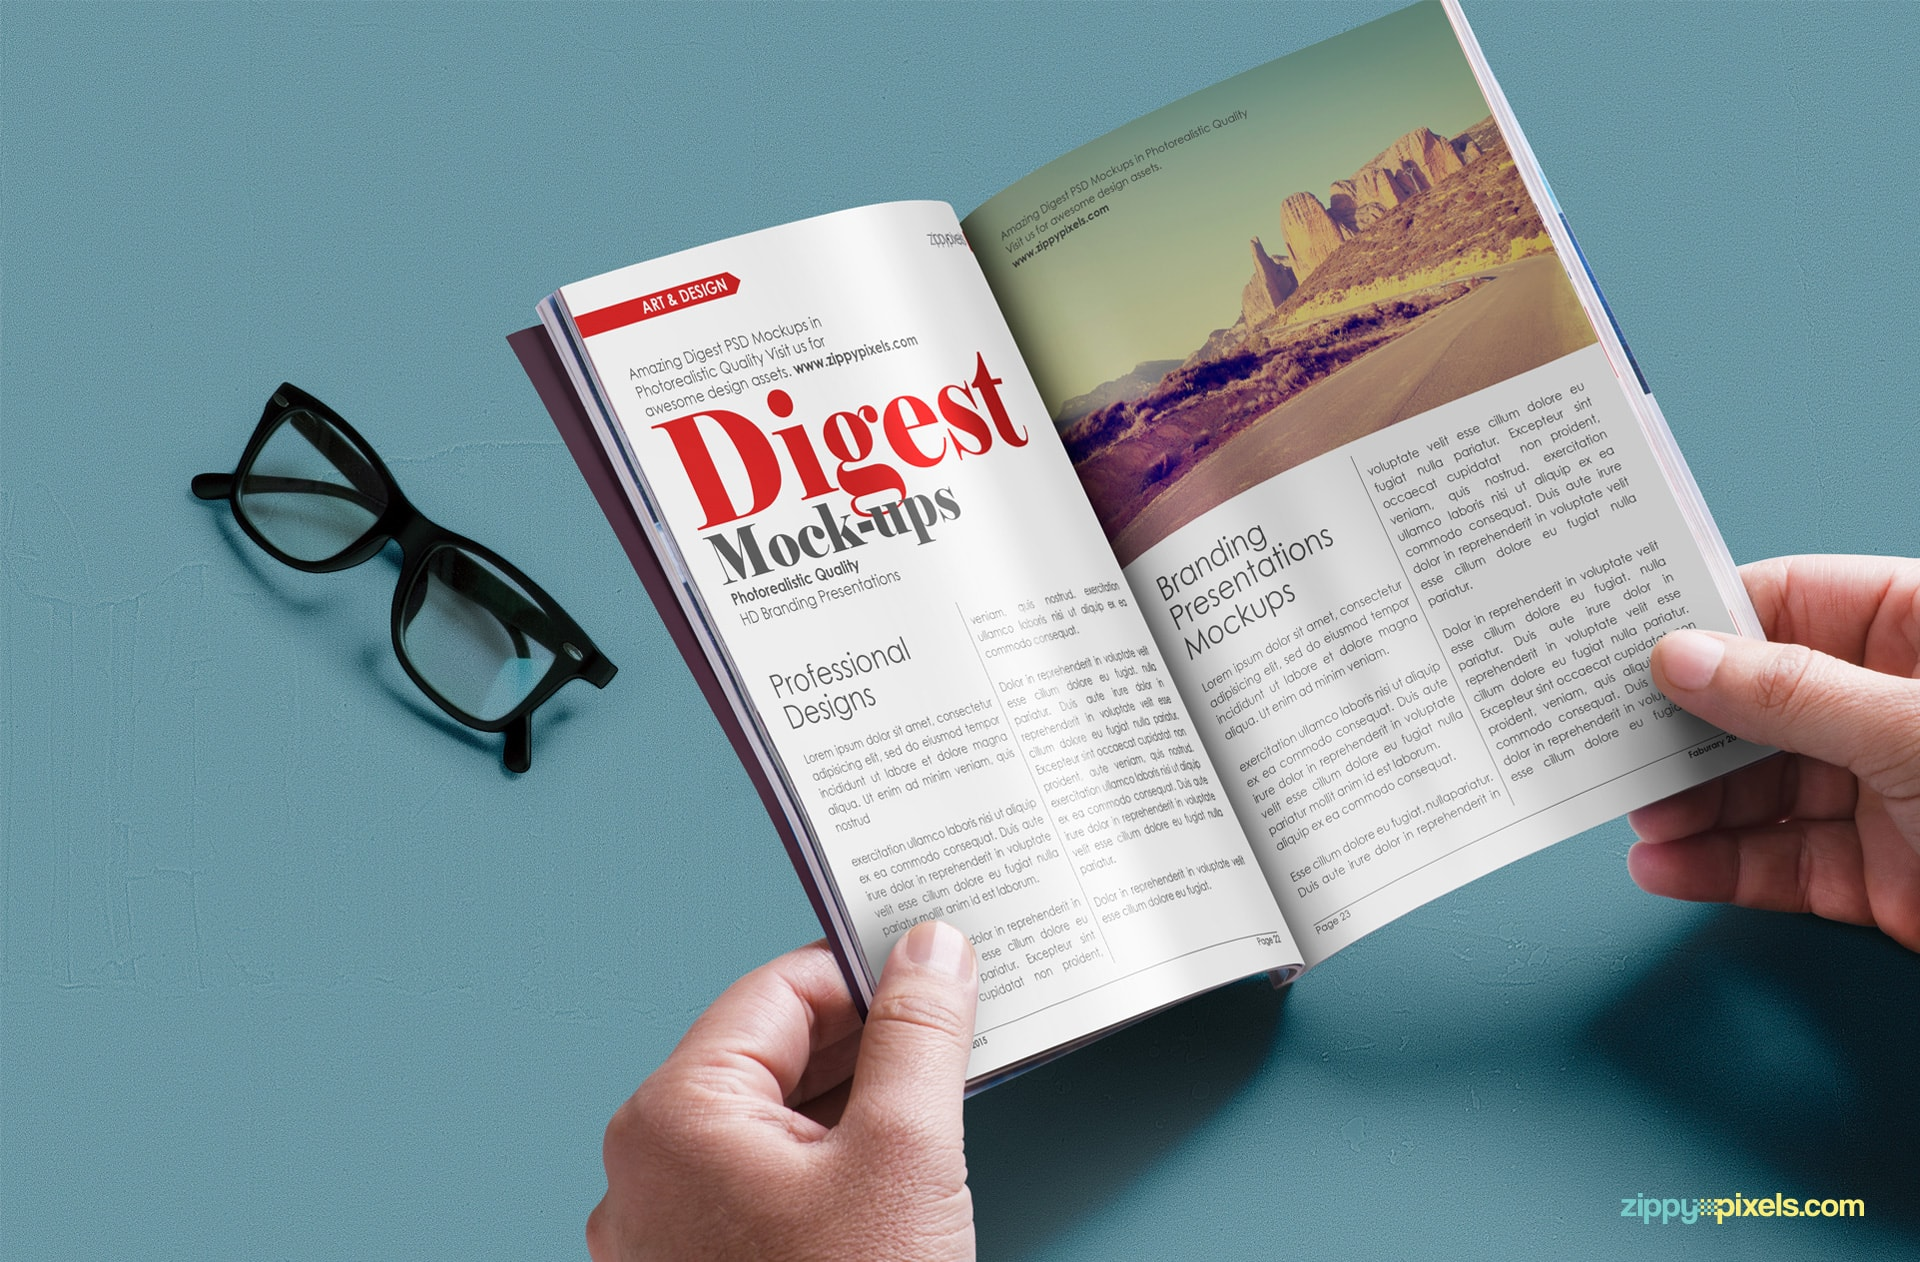 Free photorealistic paperback digest mockup for showcasing ad or page designs